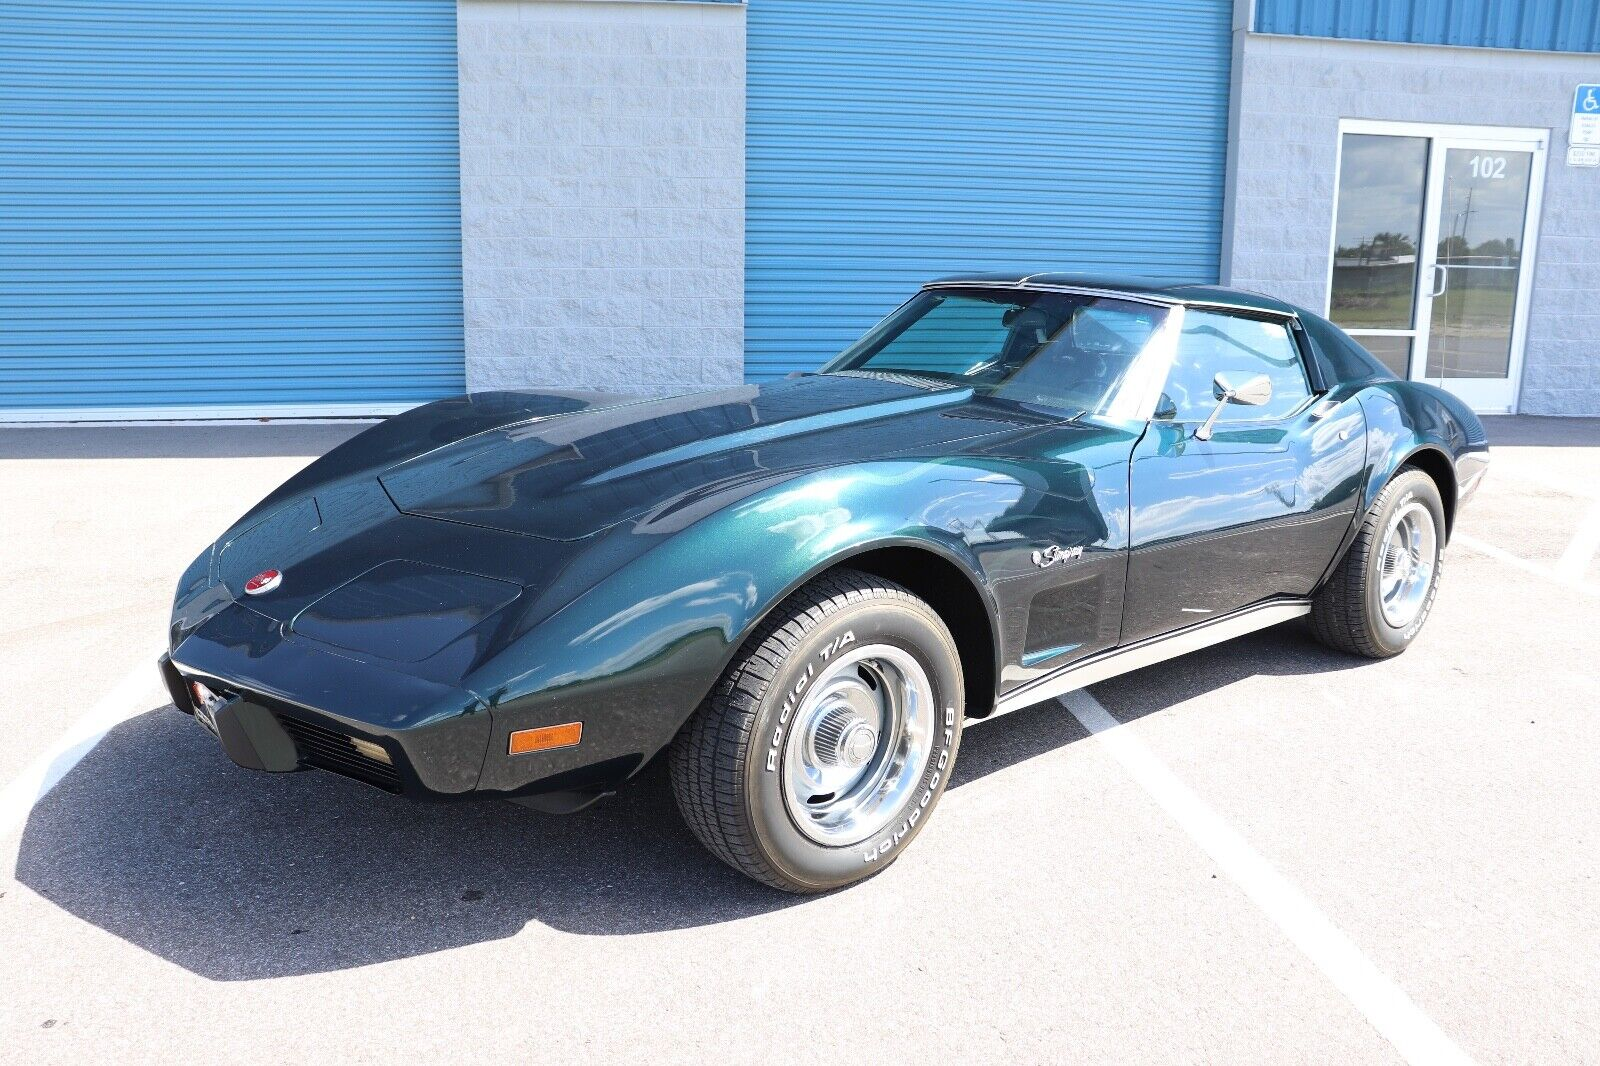 1976 Green Chevrolet Corvette Stingray  | C3 Corvette Photo 1